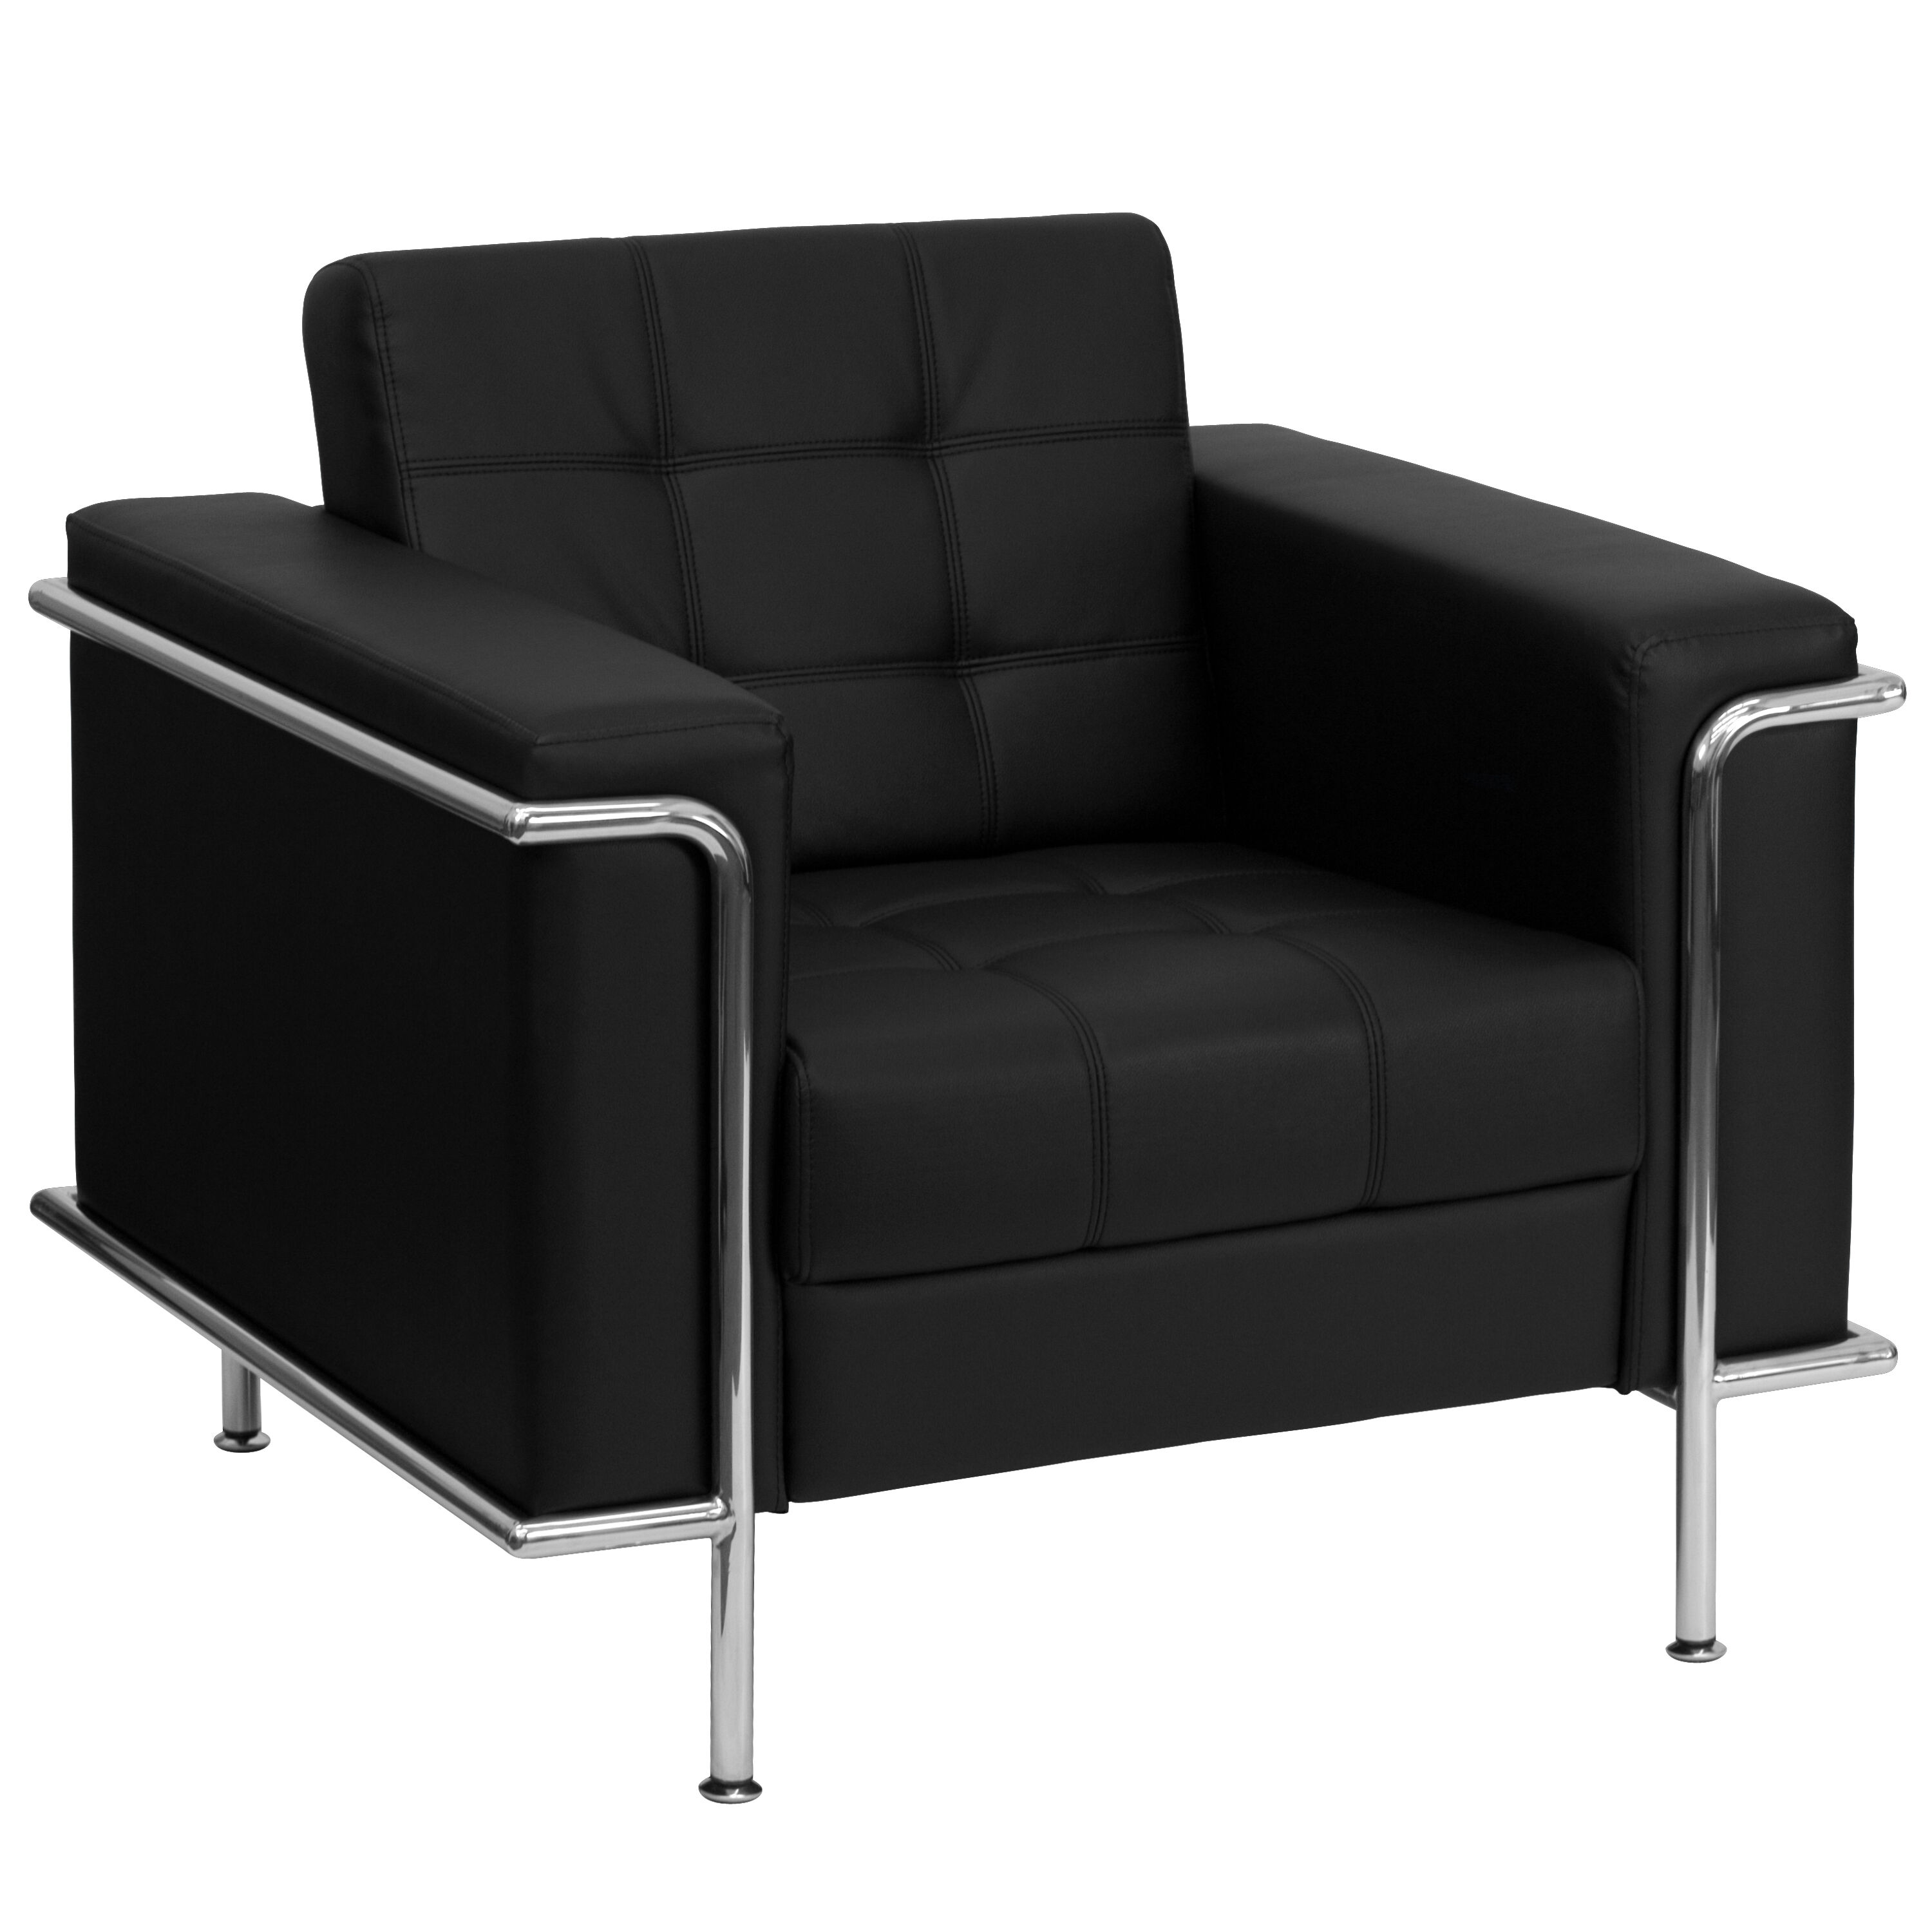 HERCULES Lesley Series Contemporary Black Leather Chair